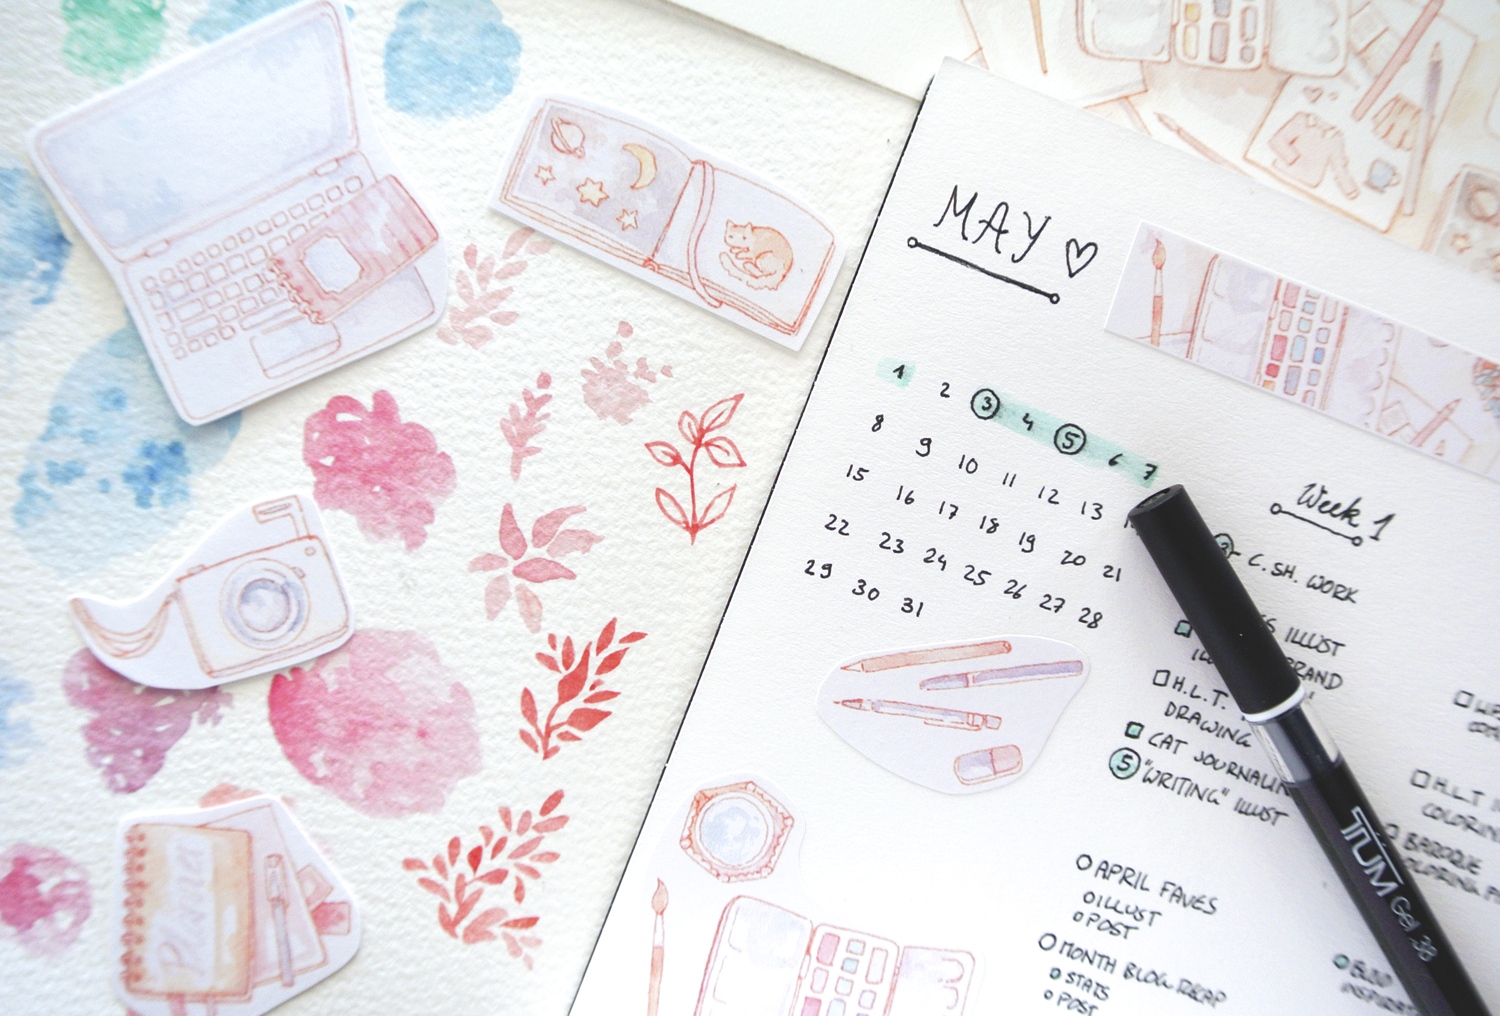 My blog and business goals for May! A monthly layout in my bullet journal for blog planning...